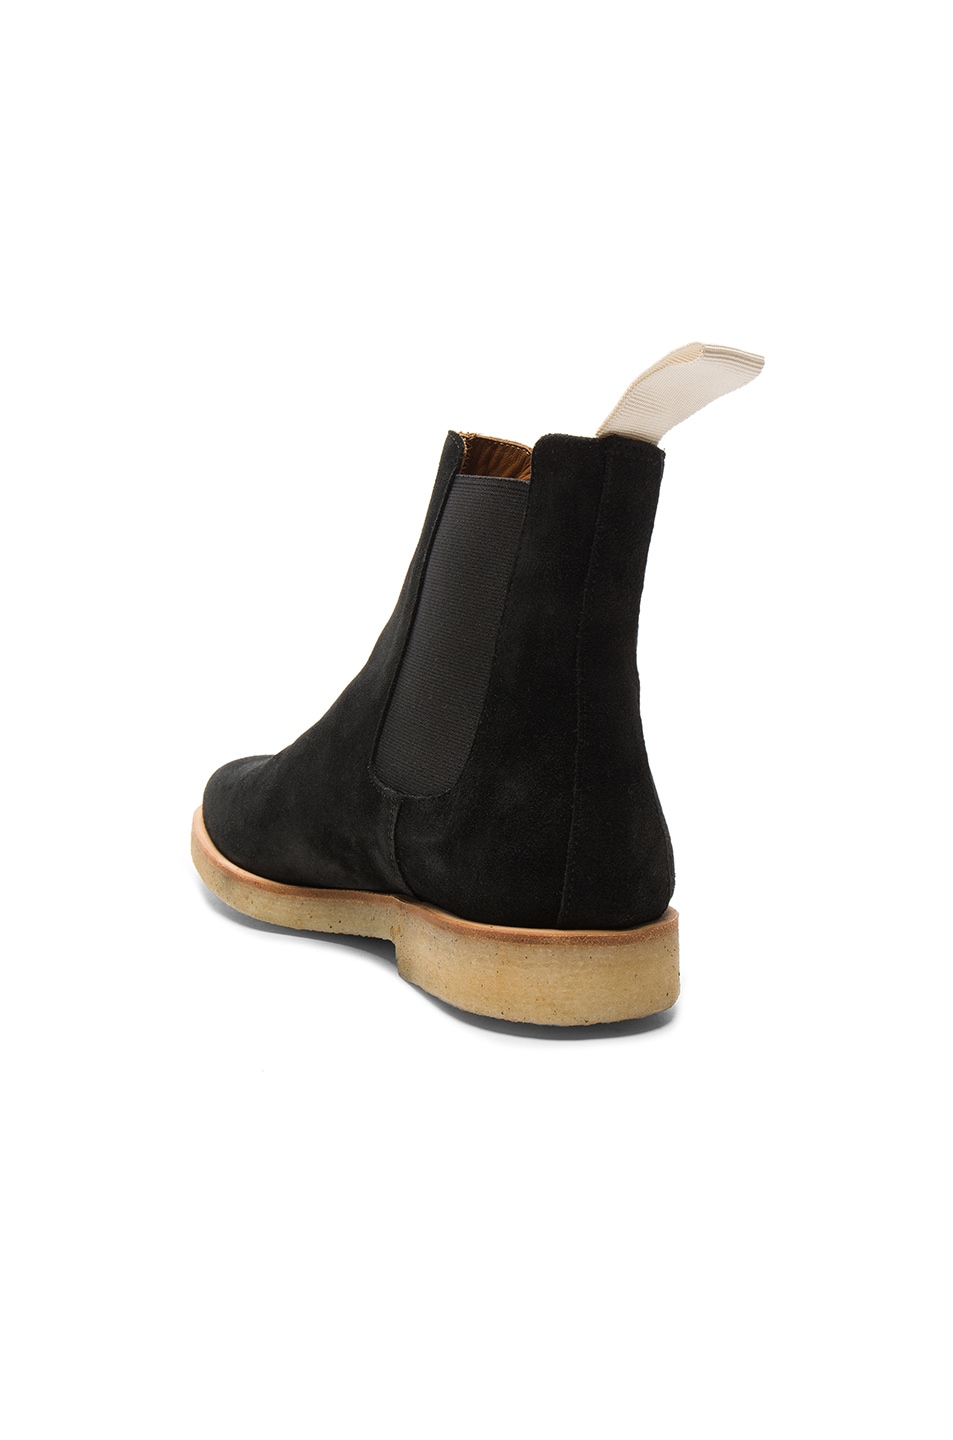 Image 3 of Common Projects Suede Chelsea Boots in Black